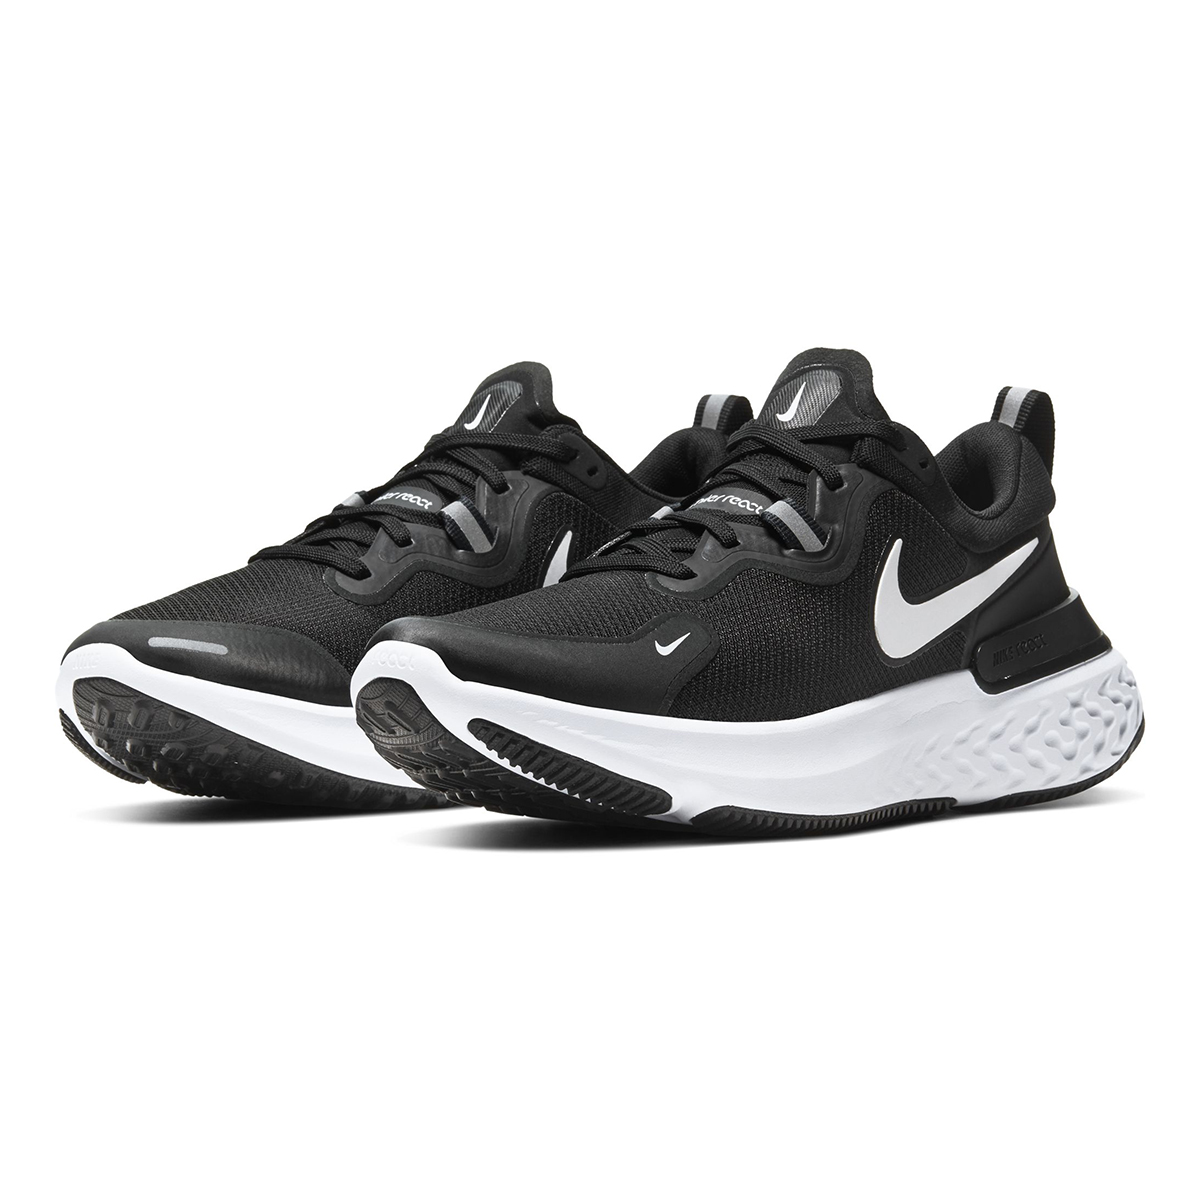 Men's Nike React Miler Running Shoe - Color: Black/Dark Grey/Anthracite/White (Regular Width) - Size: 6, Black/Dark Grey/Anthracite/White, large, image 4